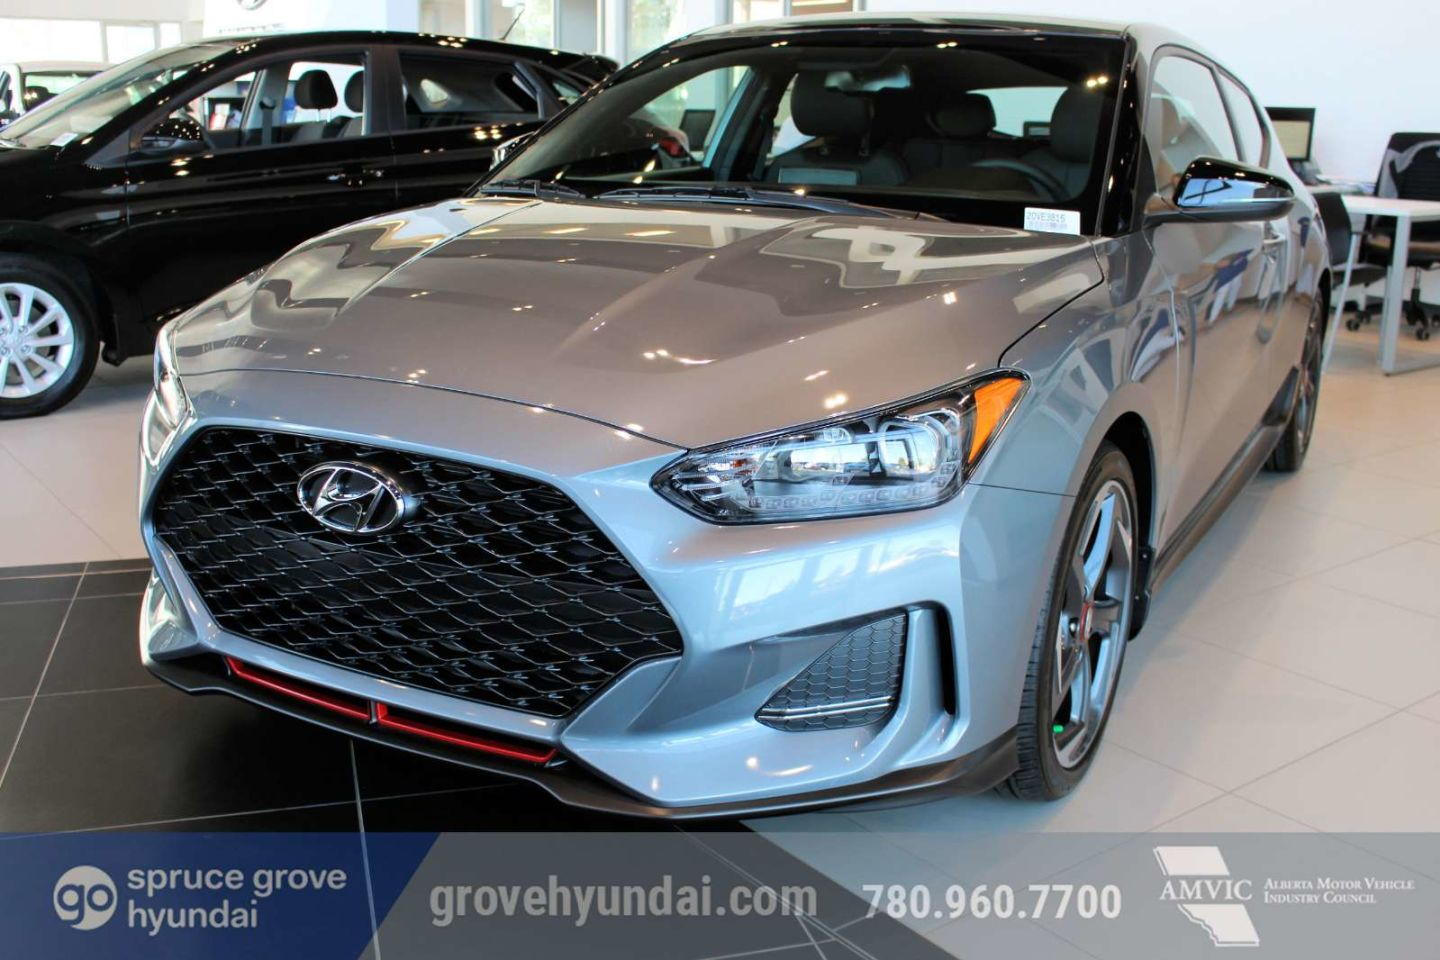 2020 Hyundai Veloster Turbo for sale in Spruce Grove, Alberta